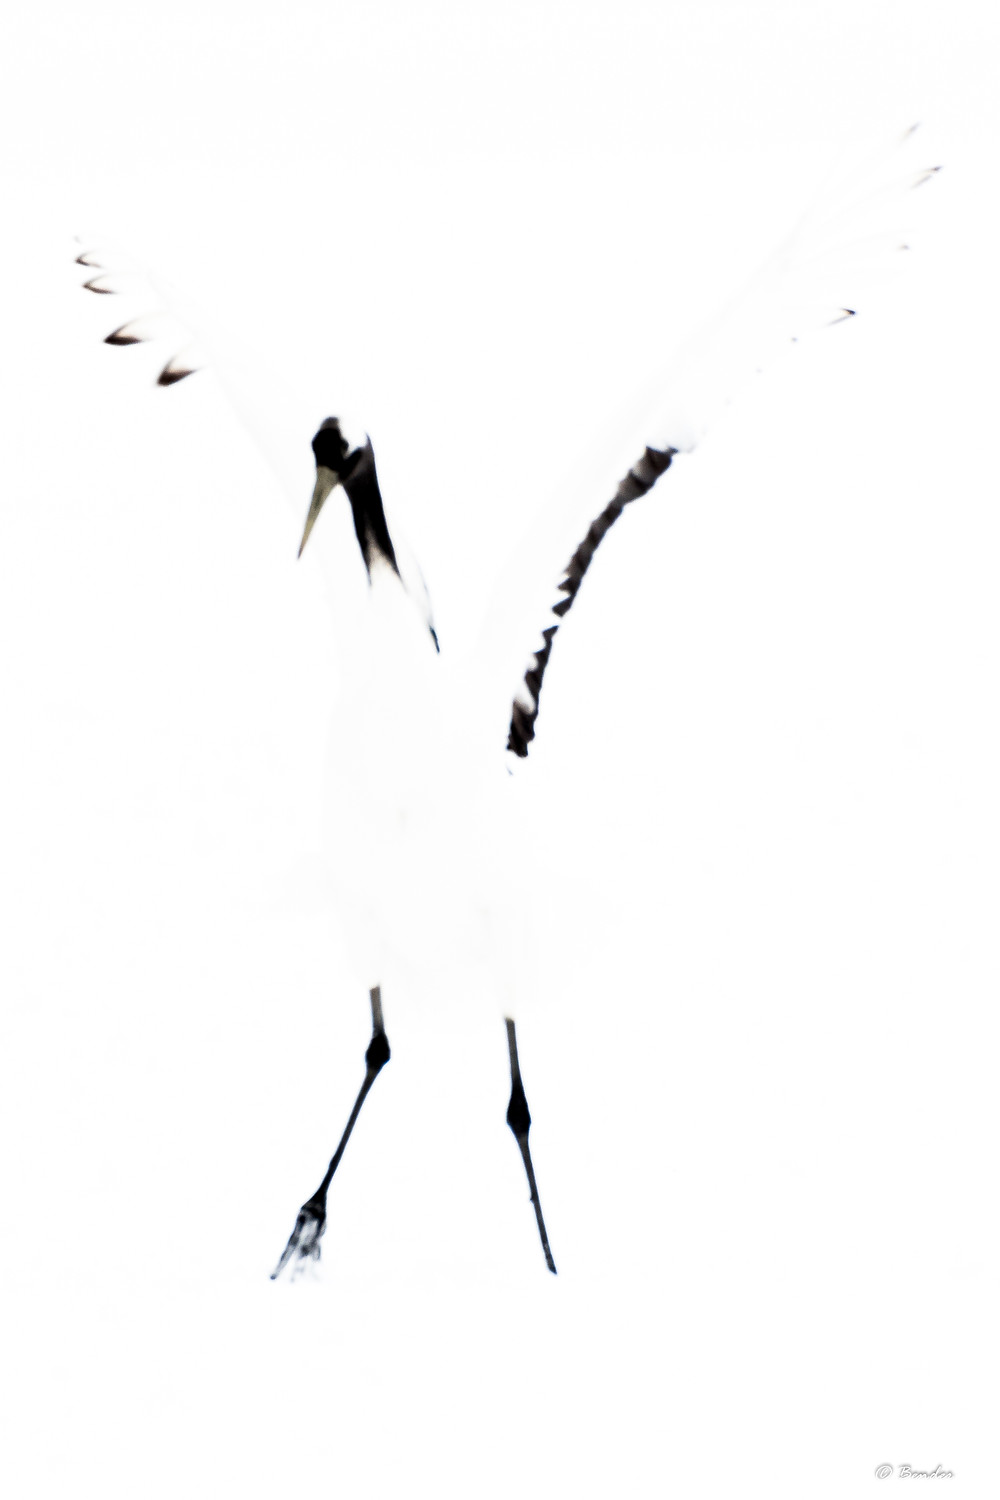 Abstract crane image